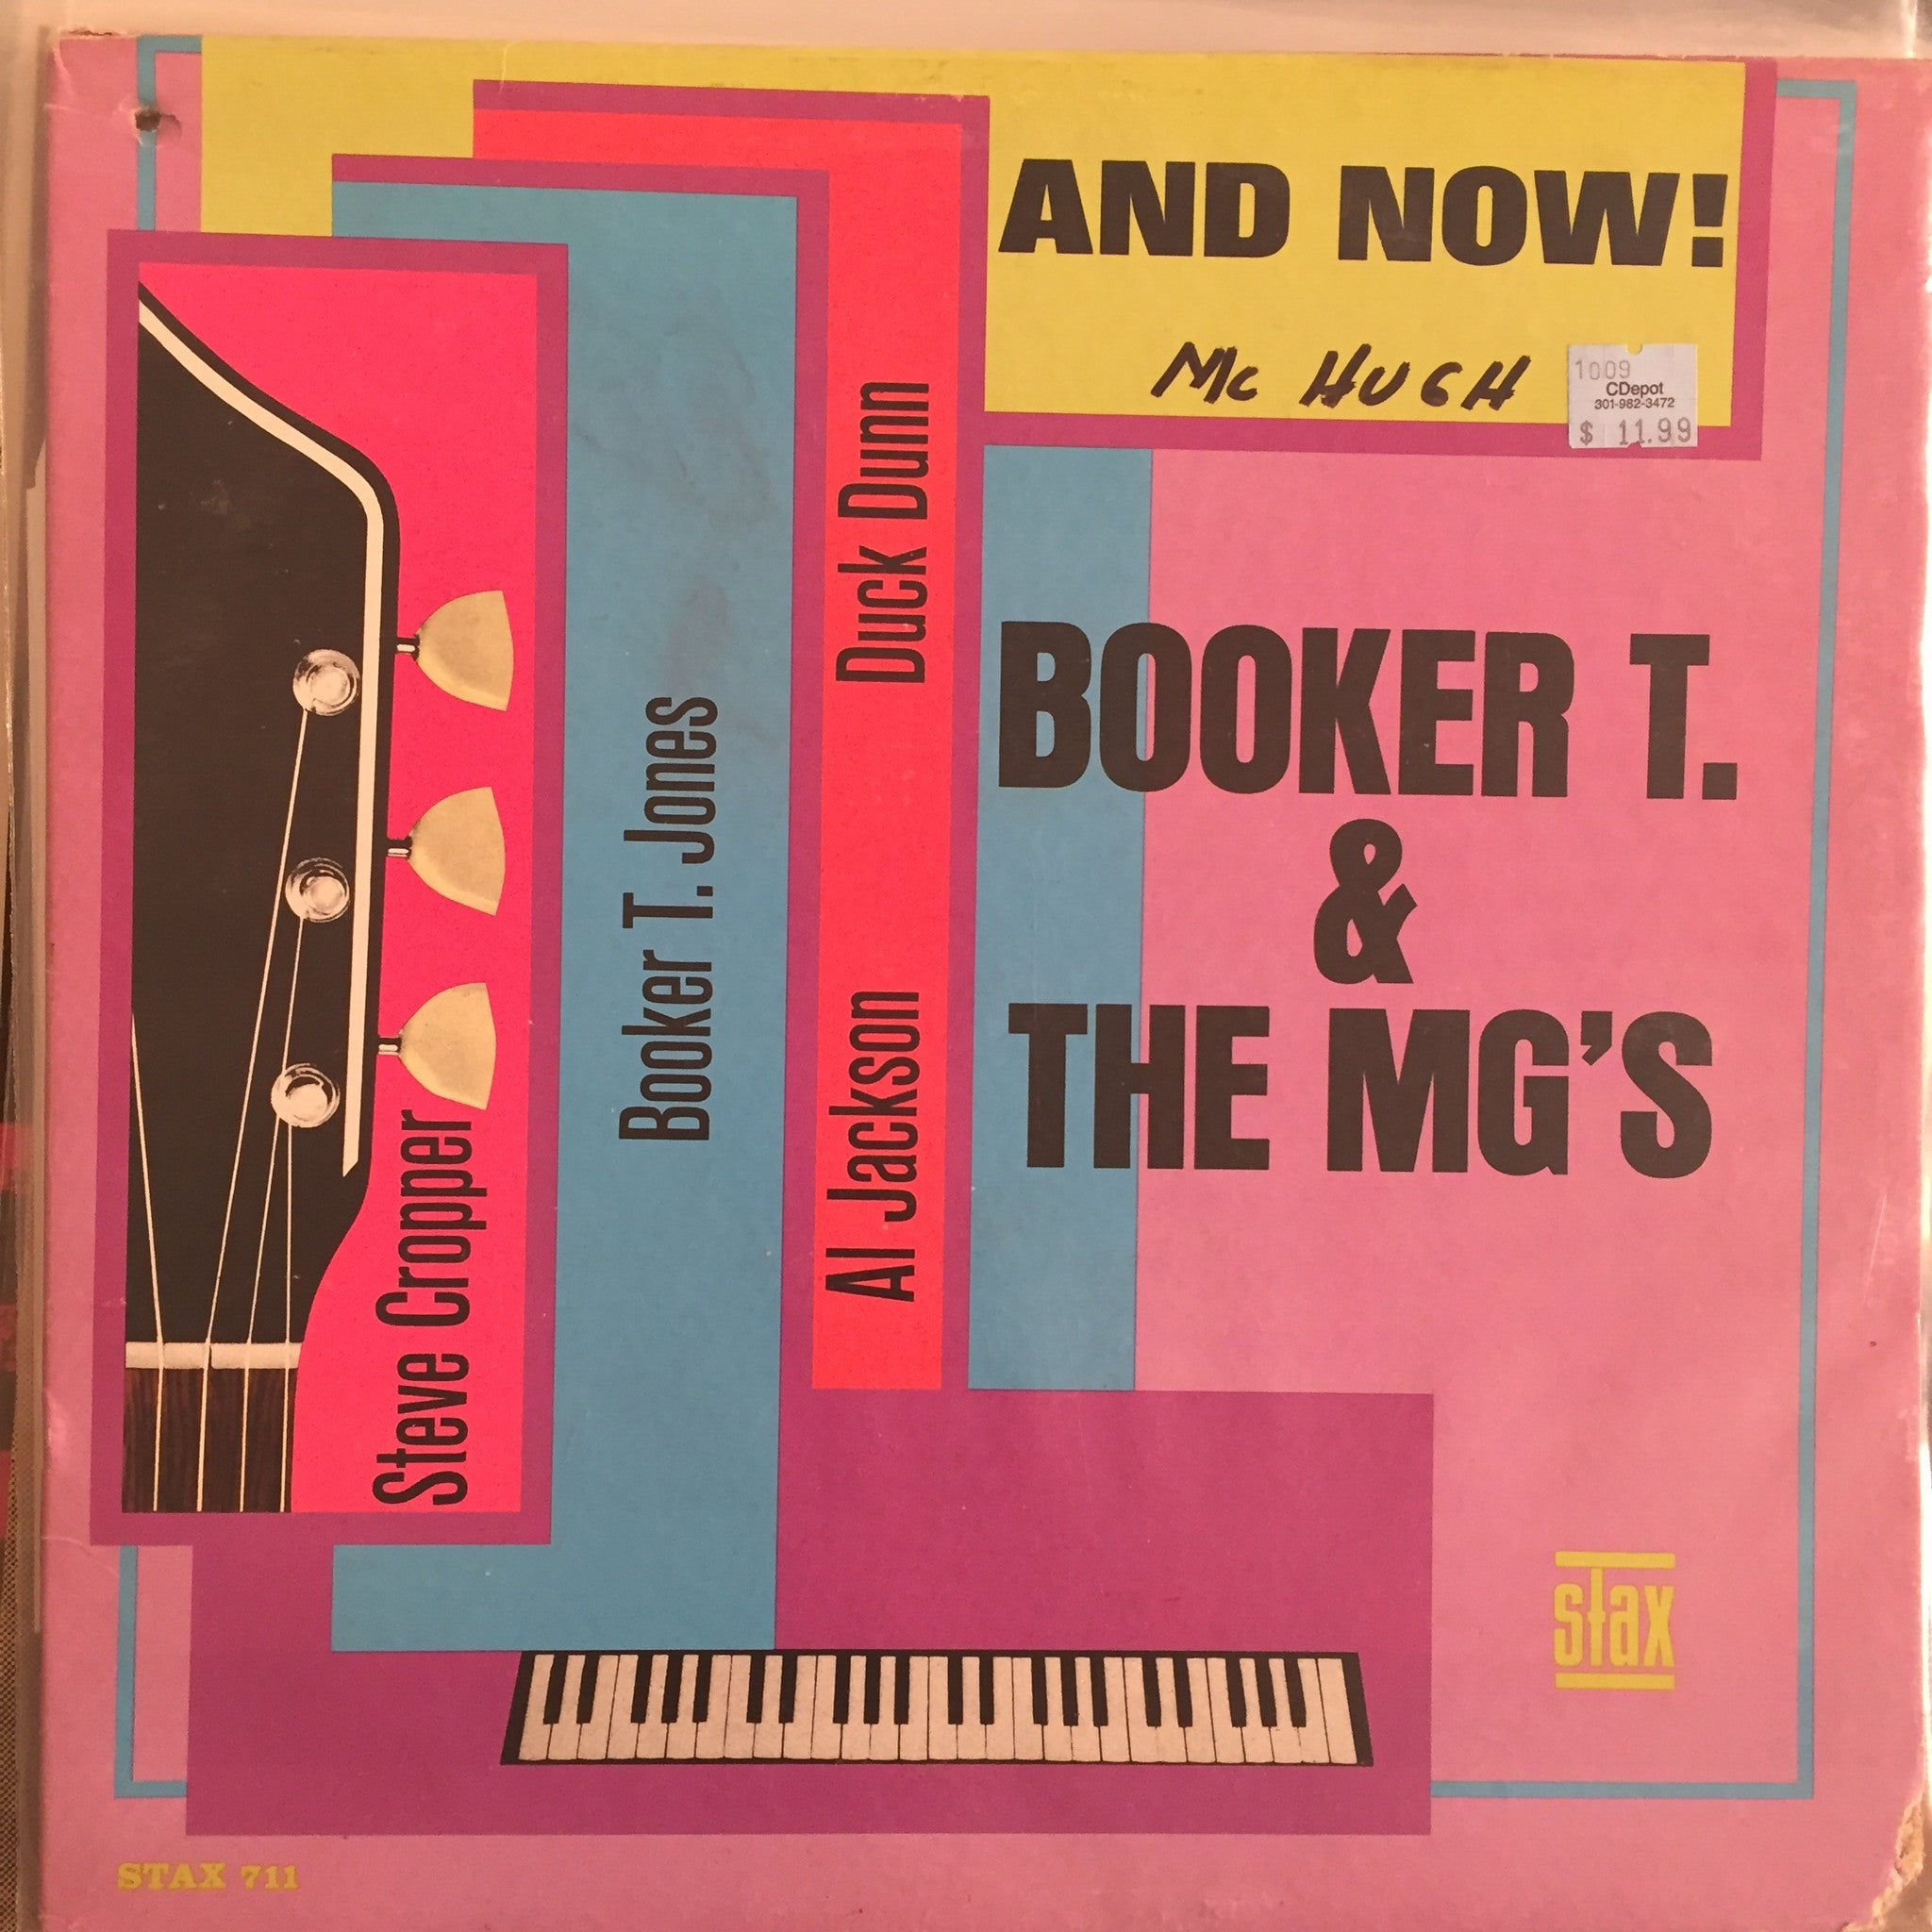 Booker T & The MG's - And Now!